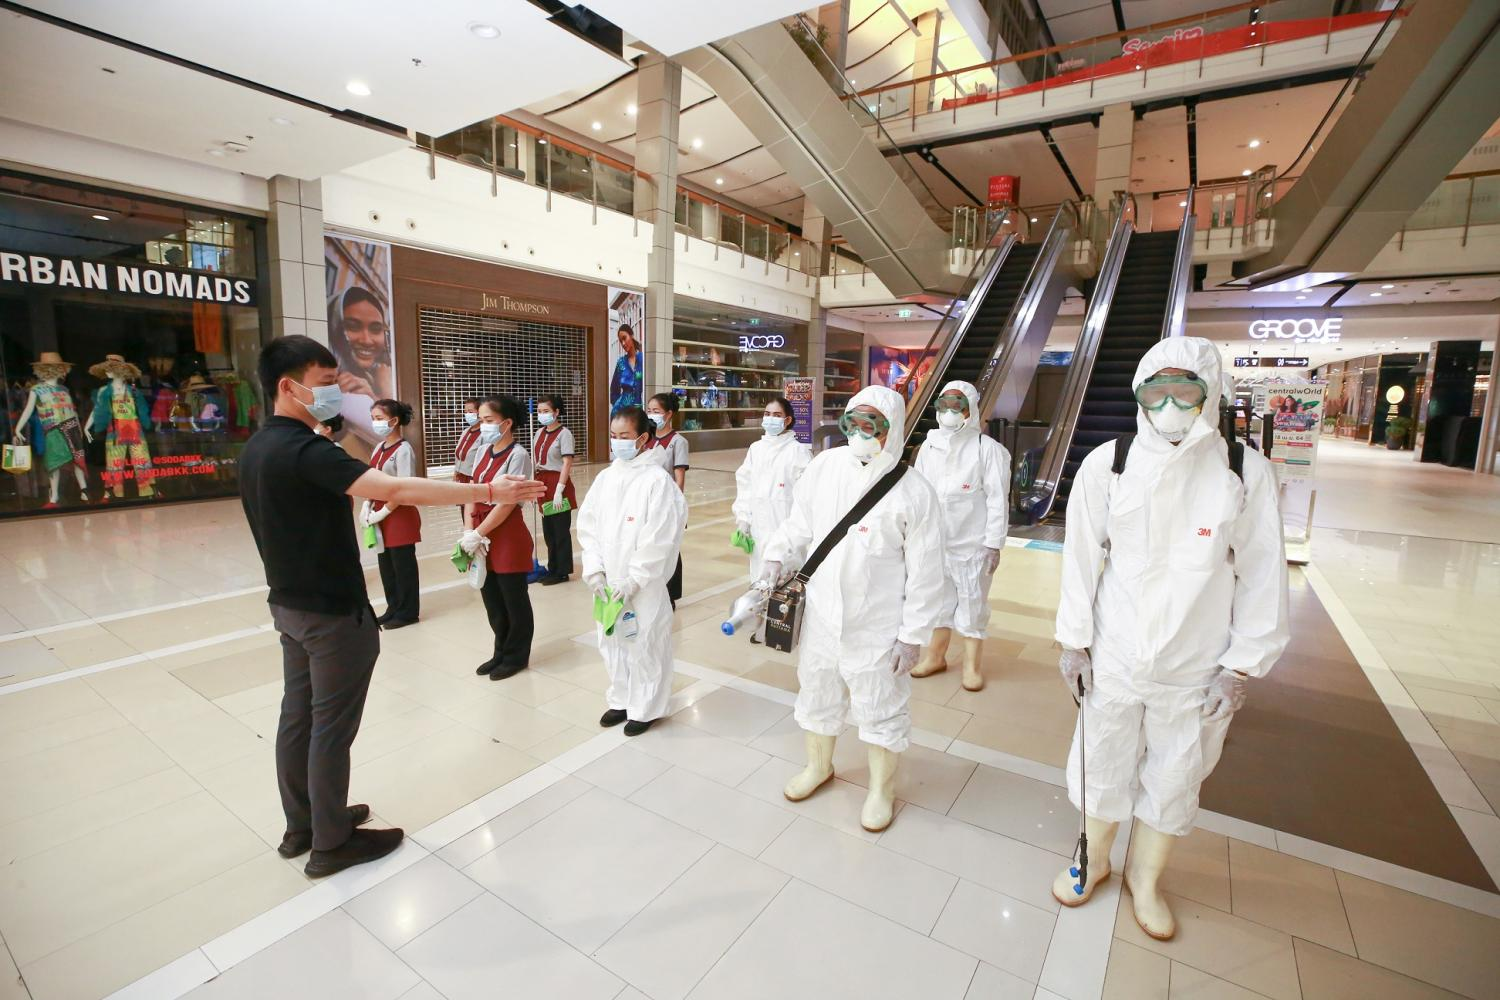 CentralWorld deploys a cleaning team as part of its 'Hygiene & Safety' master plan to weather the Covid-19 crisis.